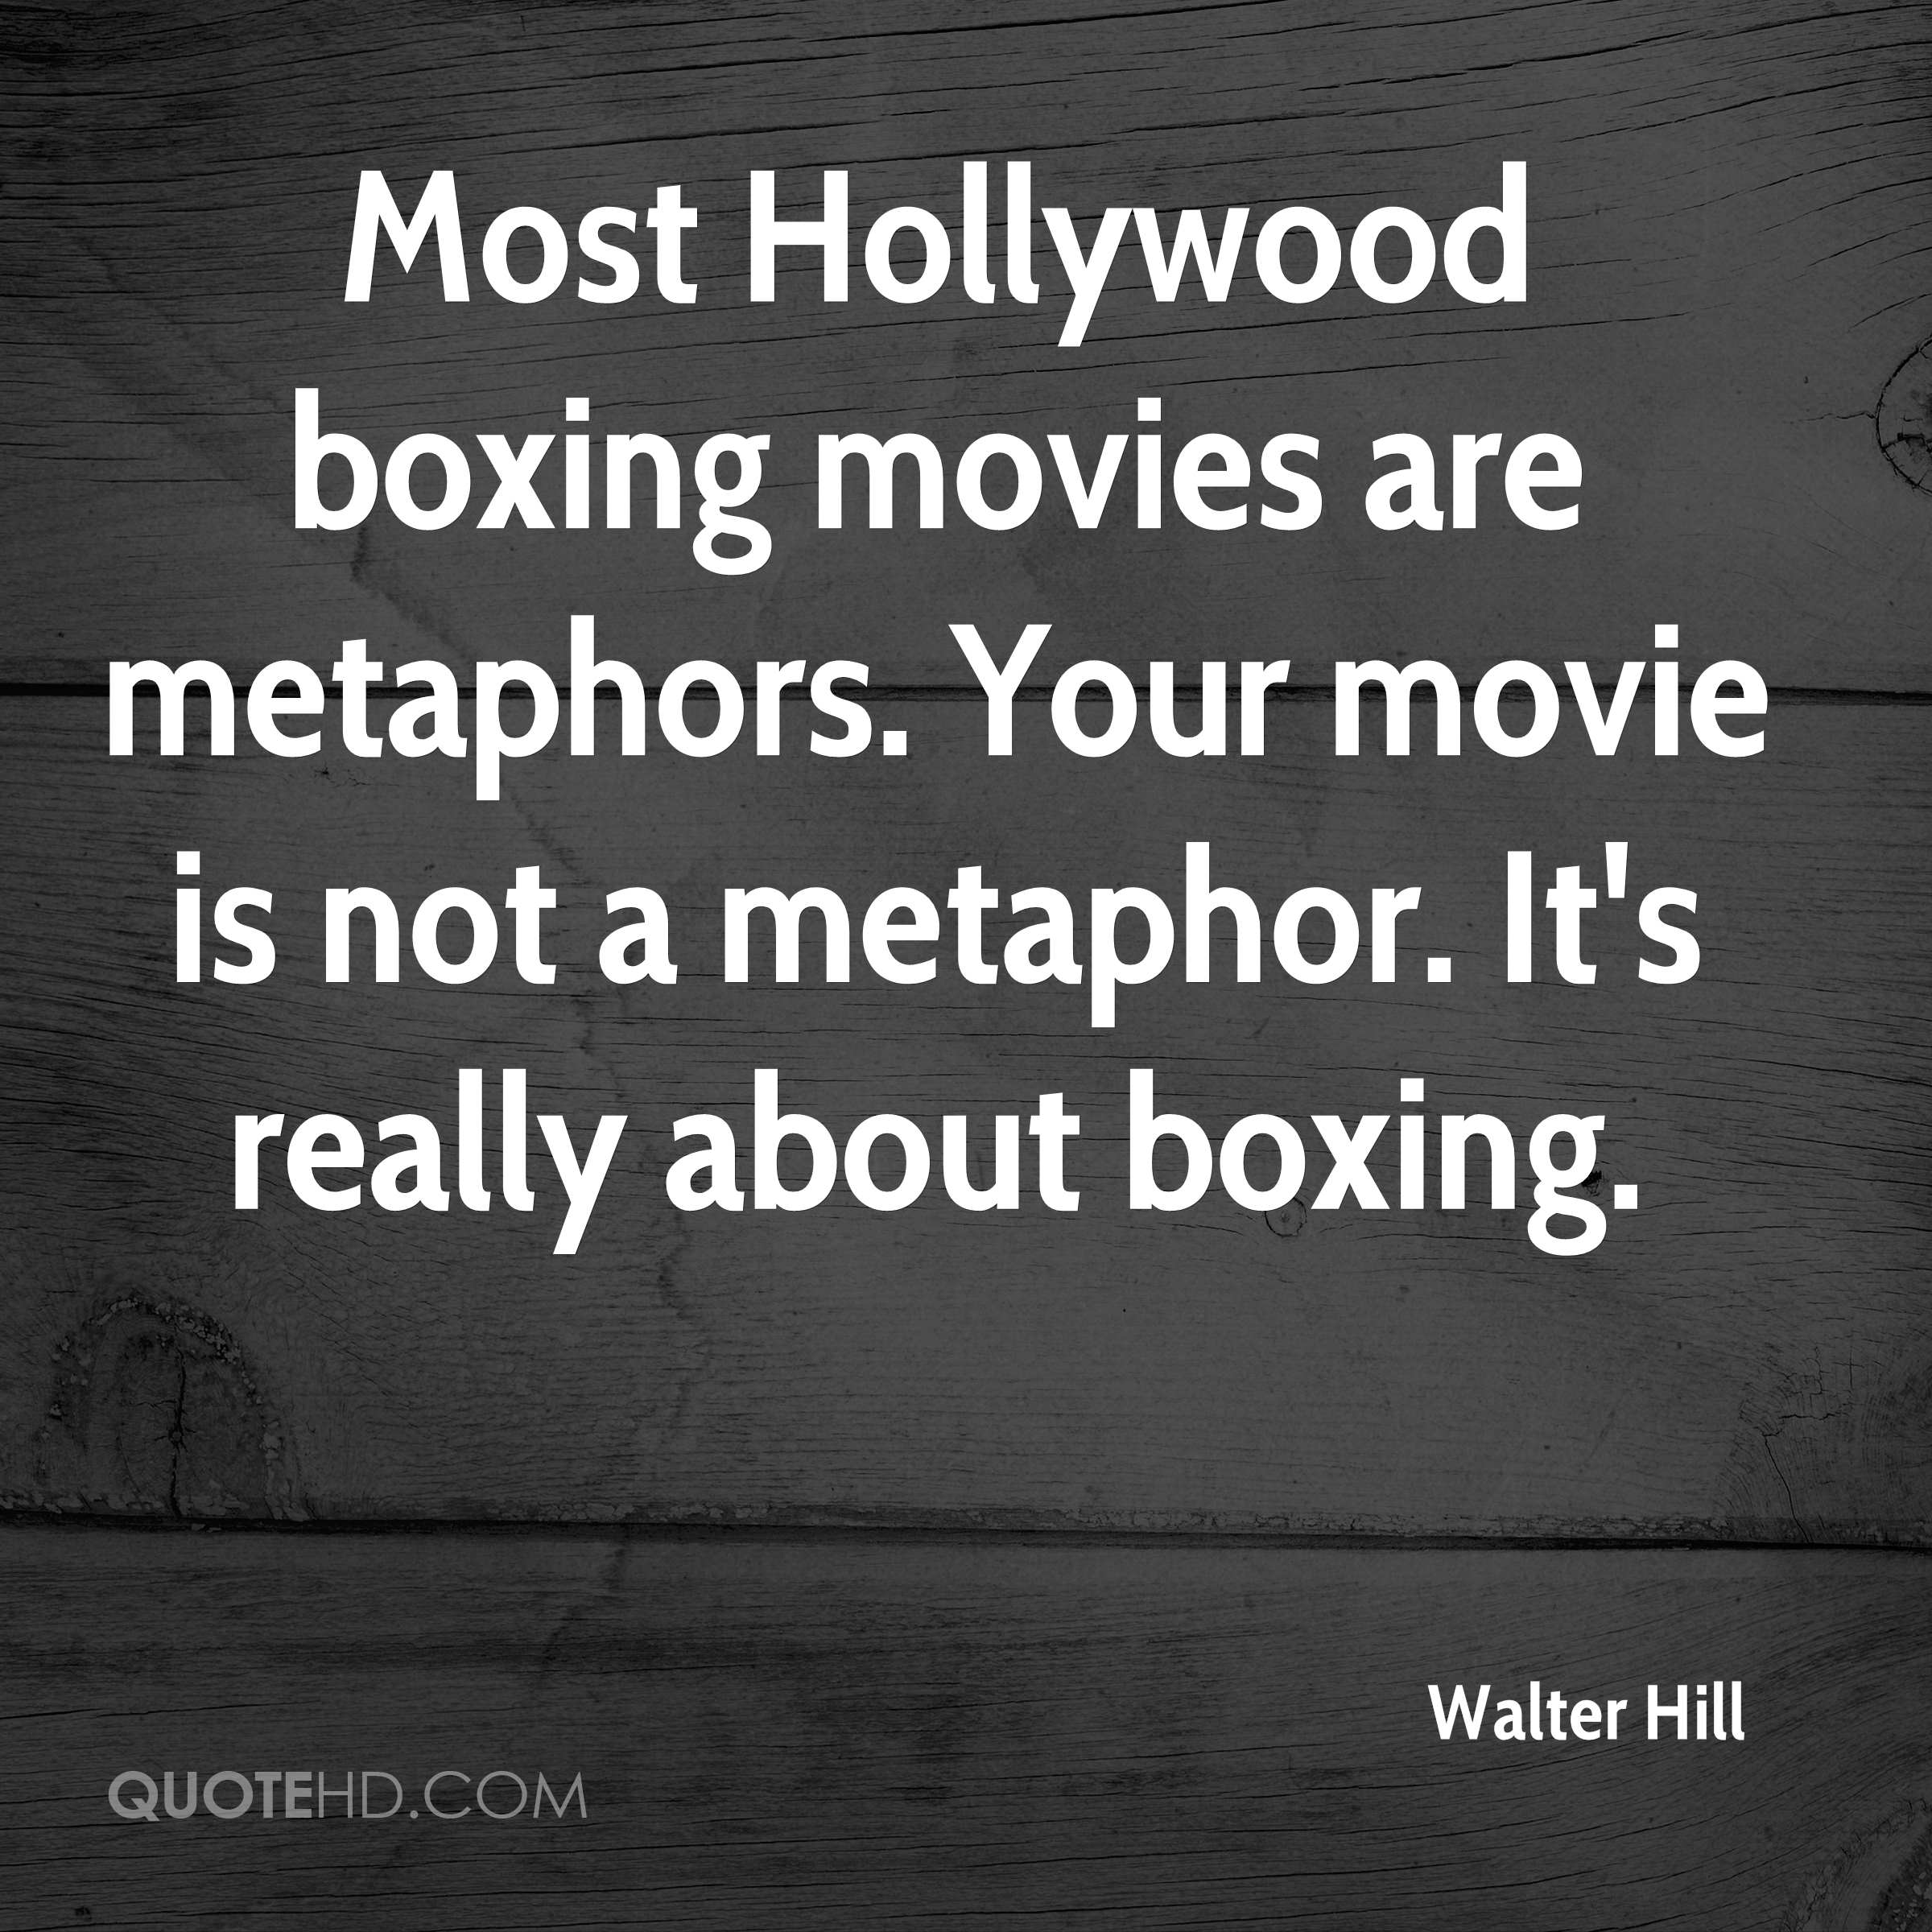 Most Quoted Movie Lines Ever: Walter Hill Quotes